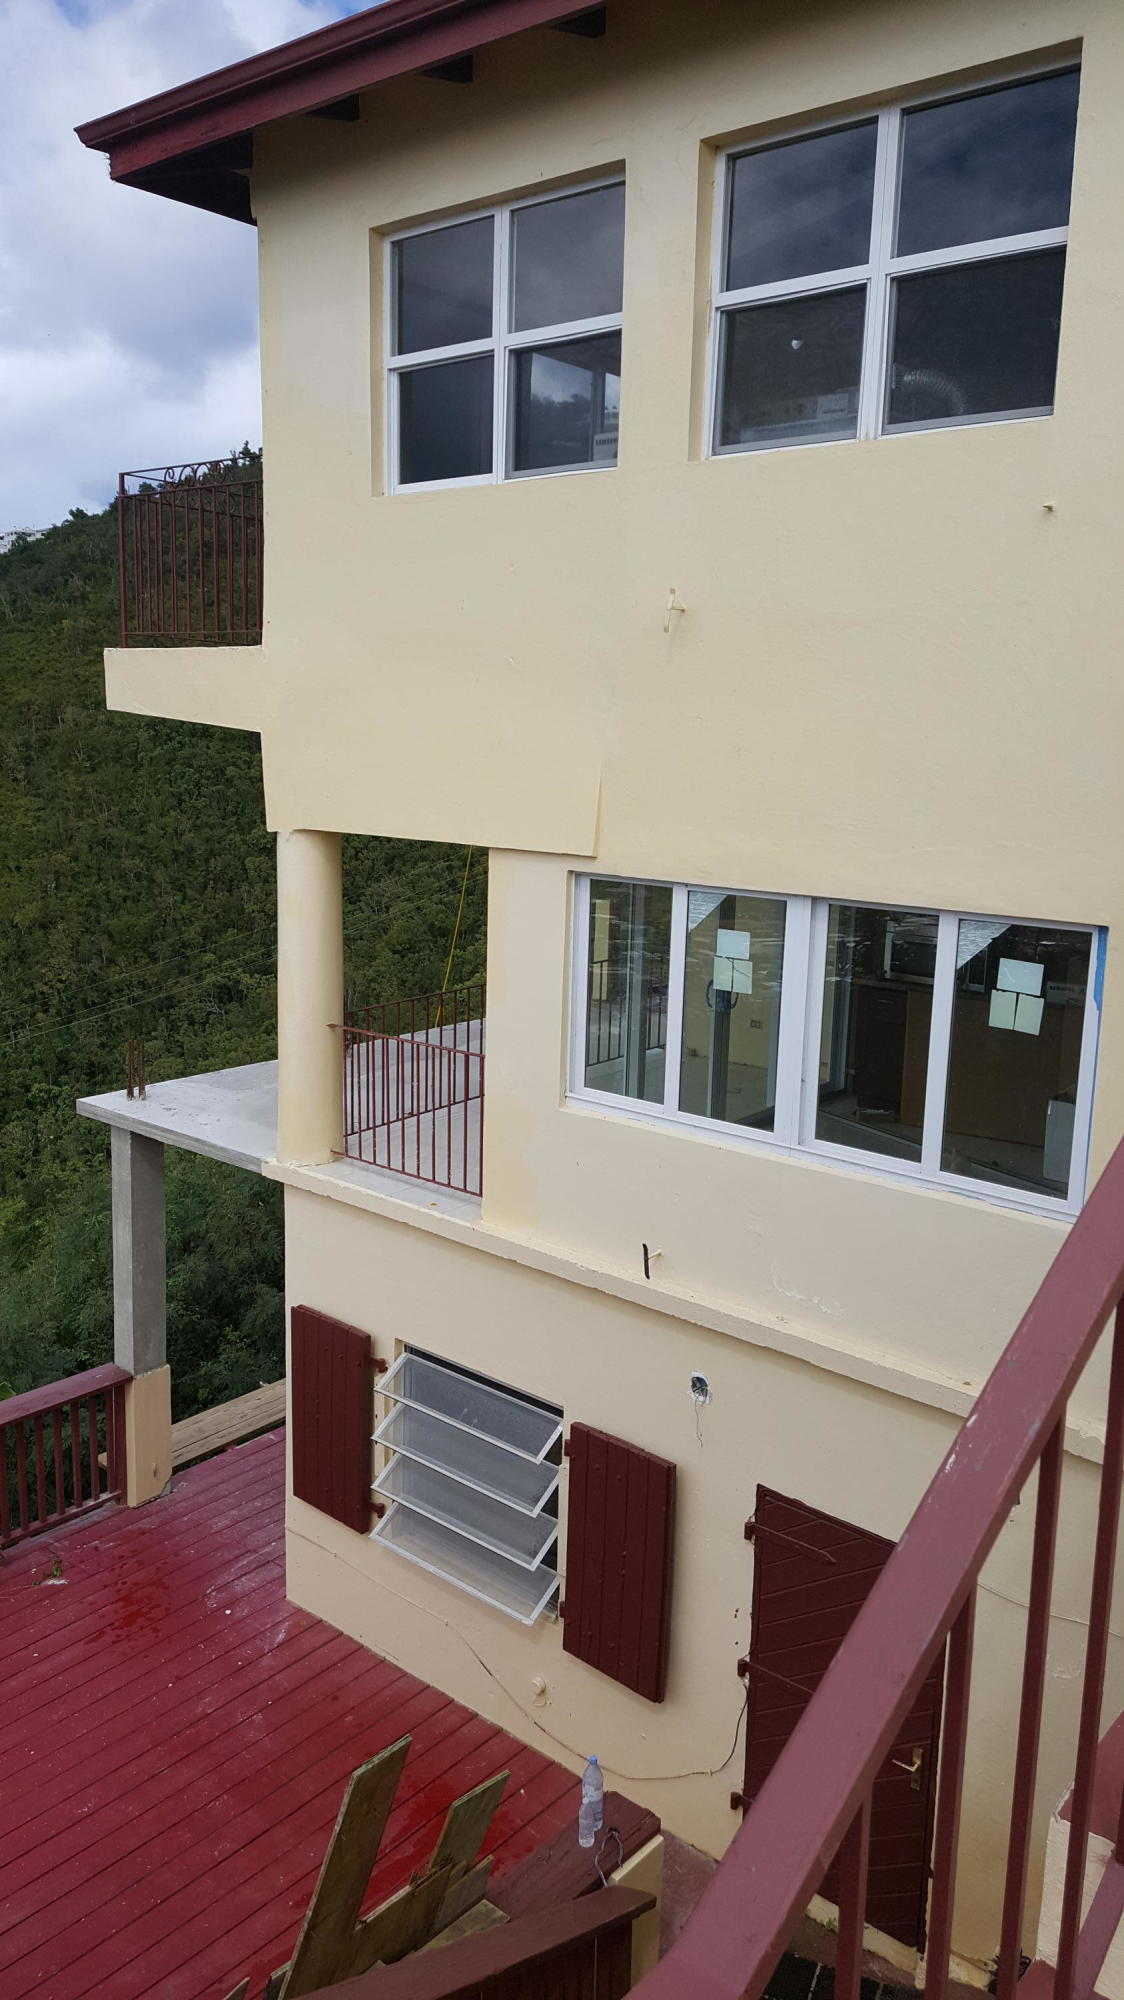 Multi-Family Home for Rent at 2A Raphune NEW 2A Raphune NEW St Thomas, Virgin Islands 00802 United States Virgin Islands